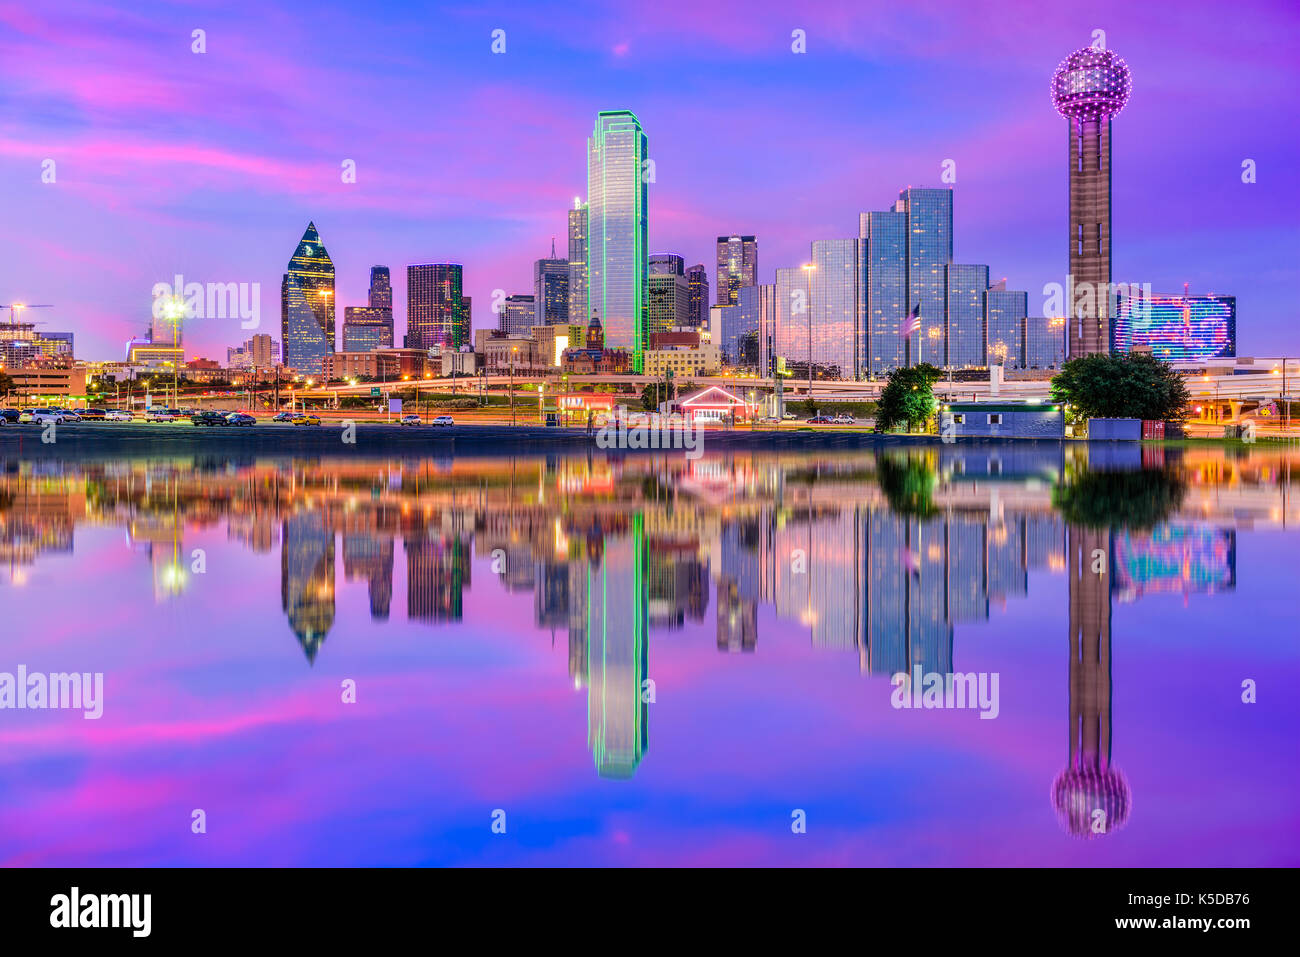 Dallas, Texas, USA downtown city skyline. - Stock Image